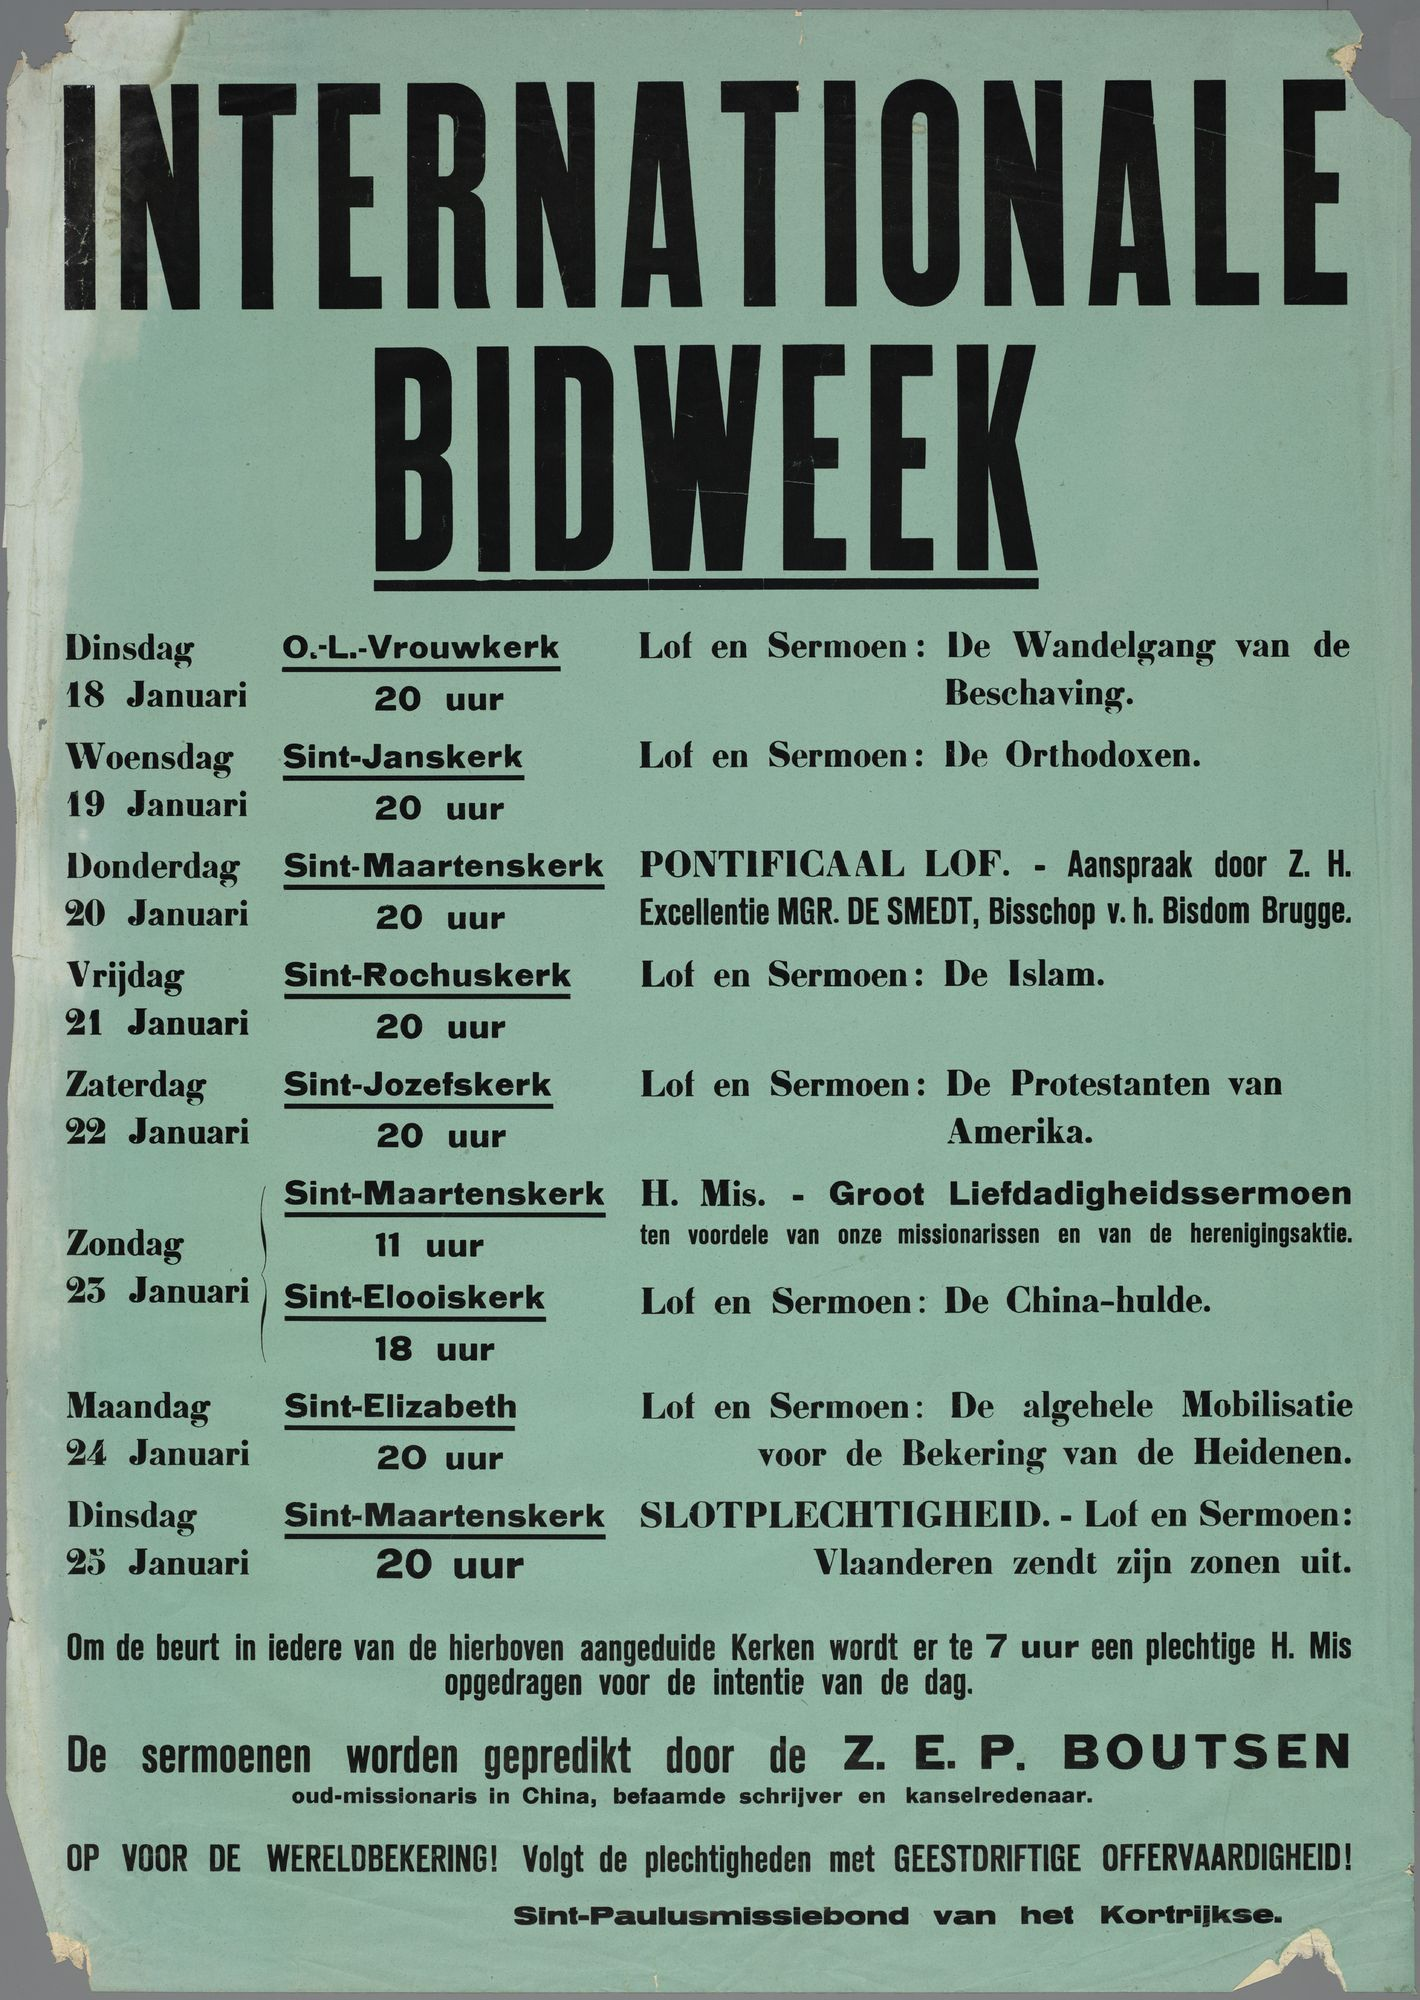 Internationale bidweek